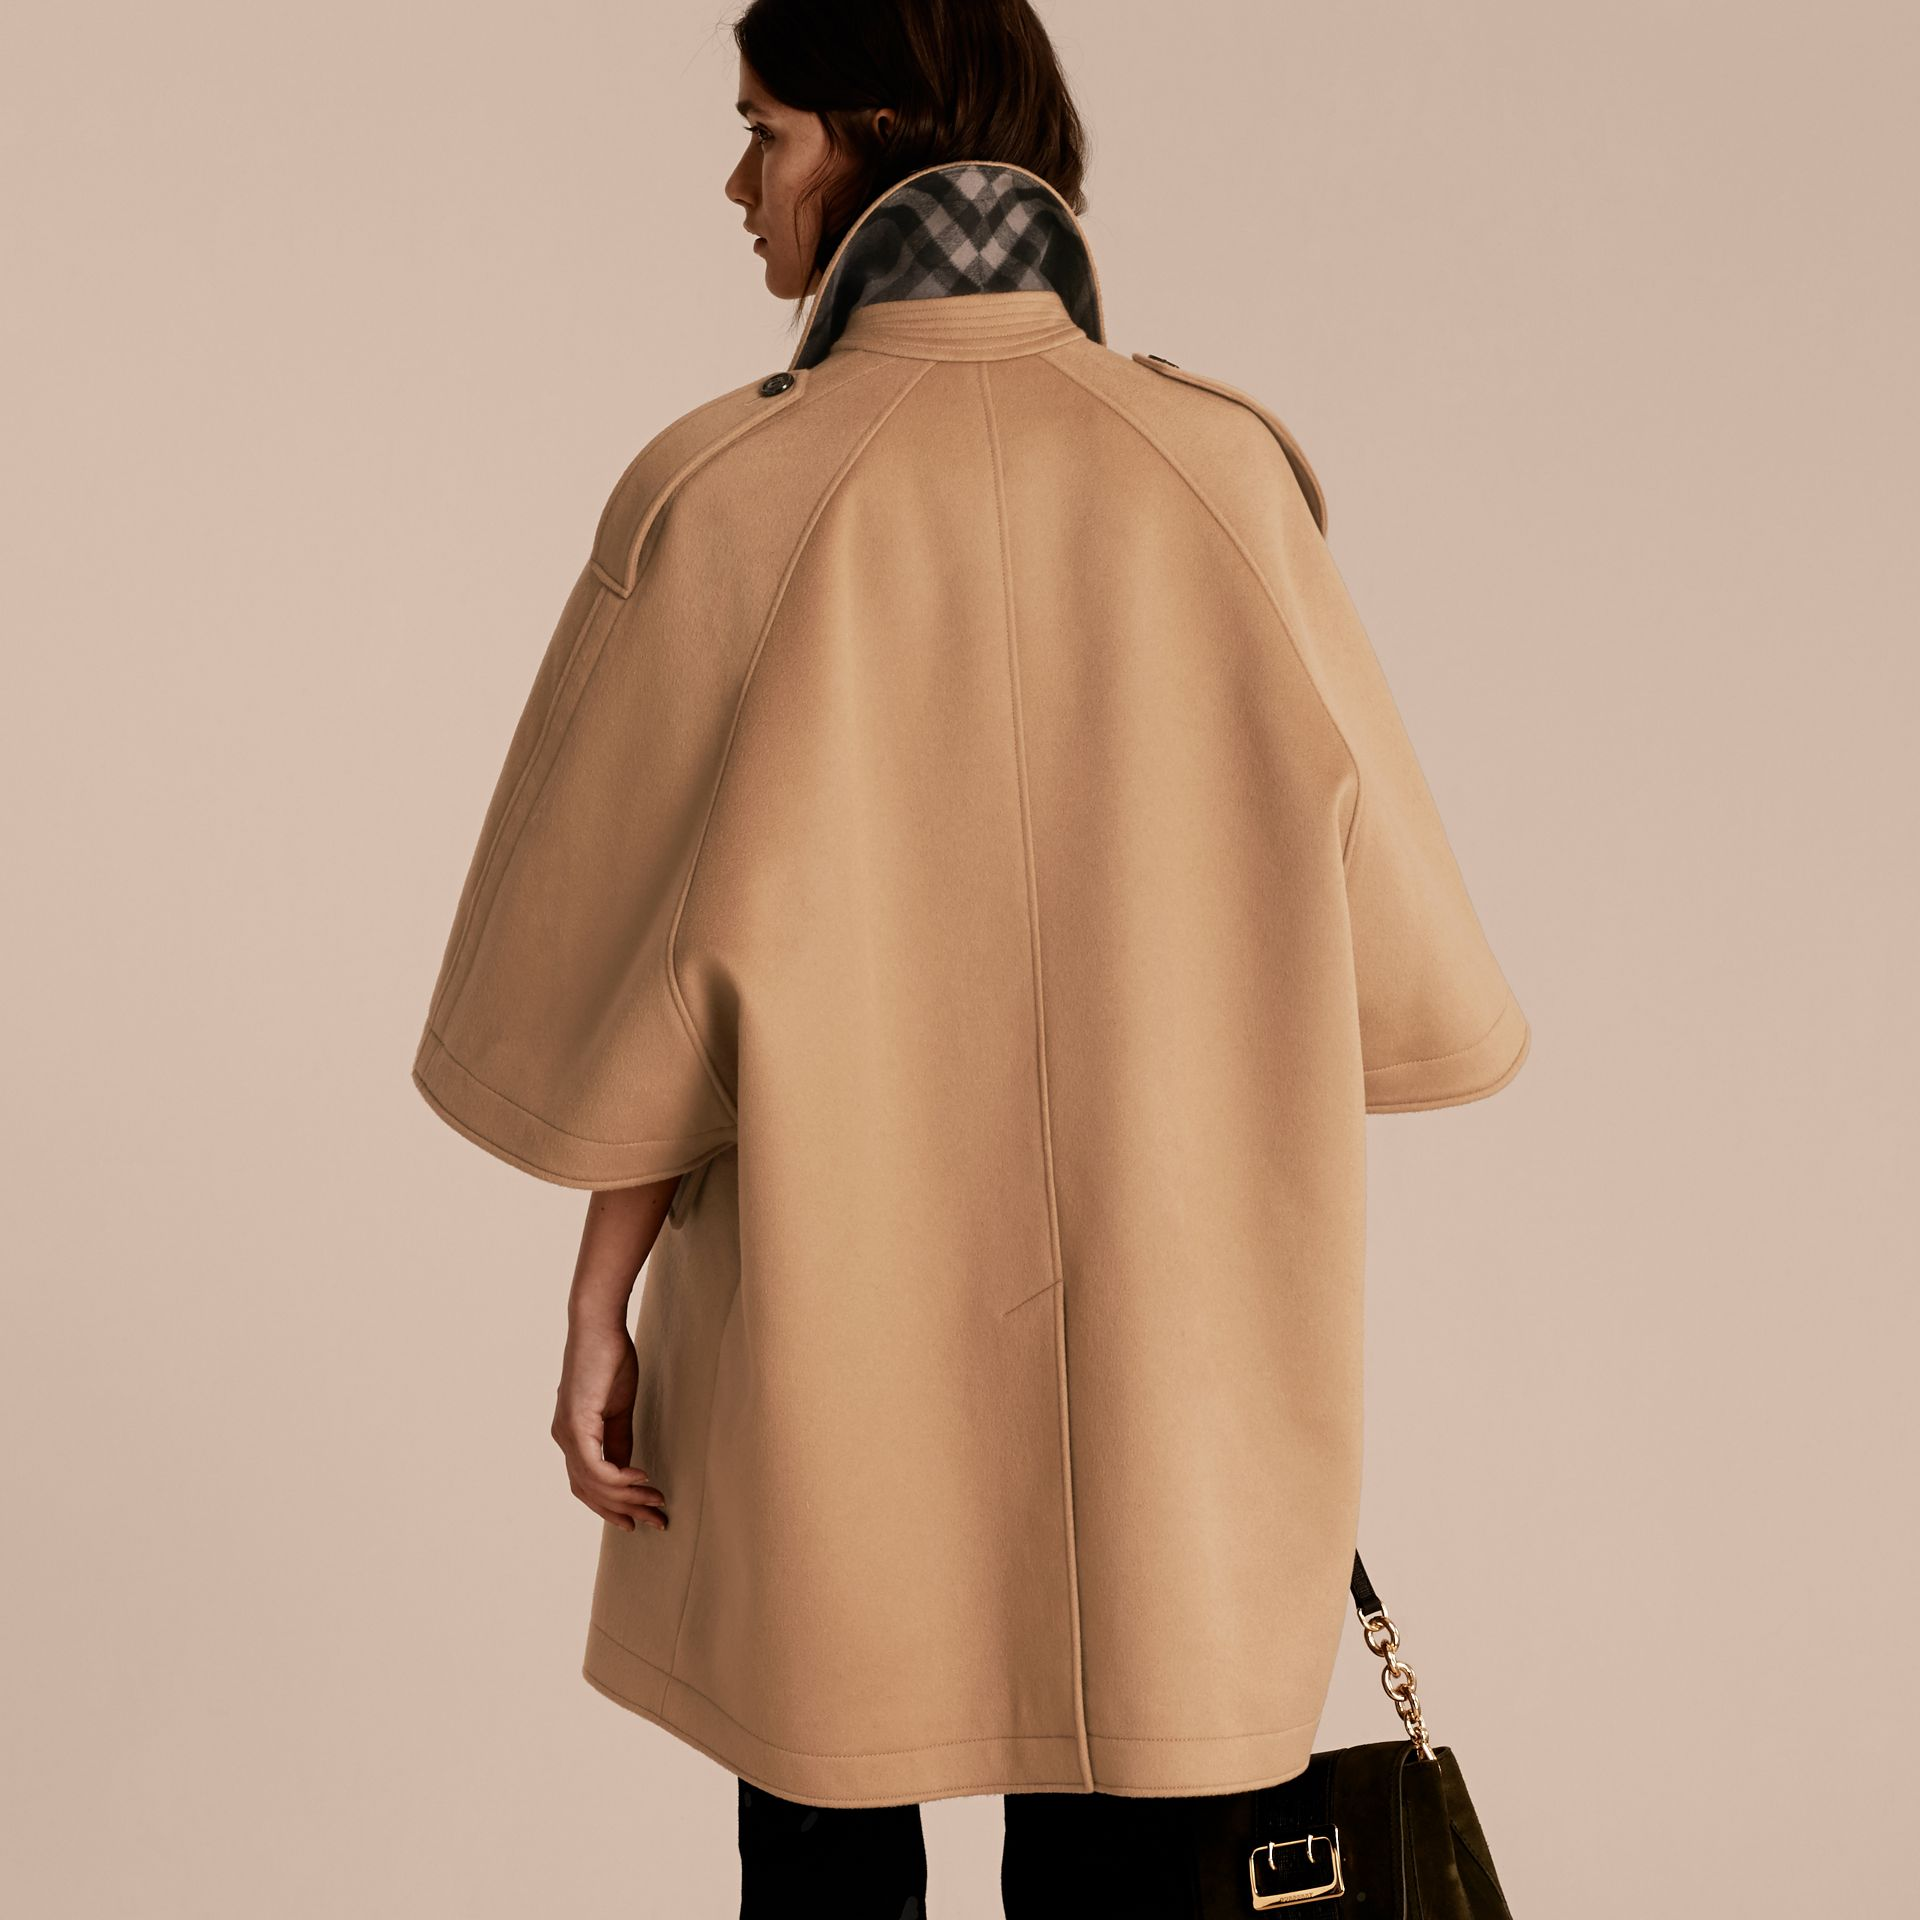 Camel Trench-coat cape en laine et cachemire - photo de la galerie 3